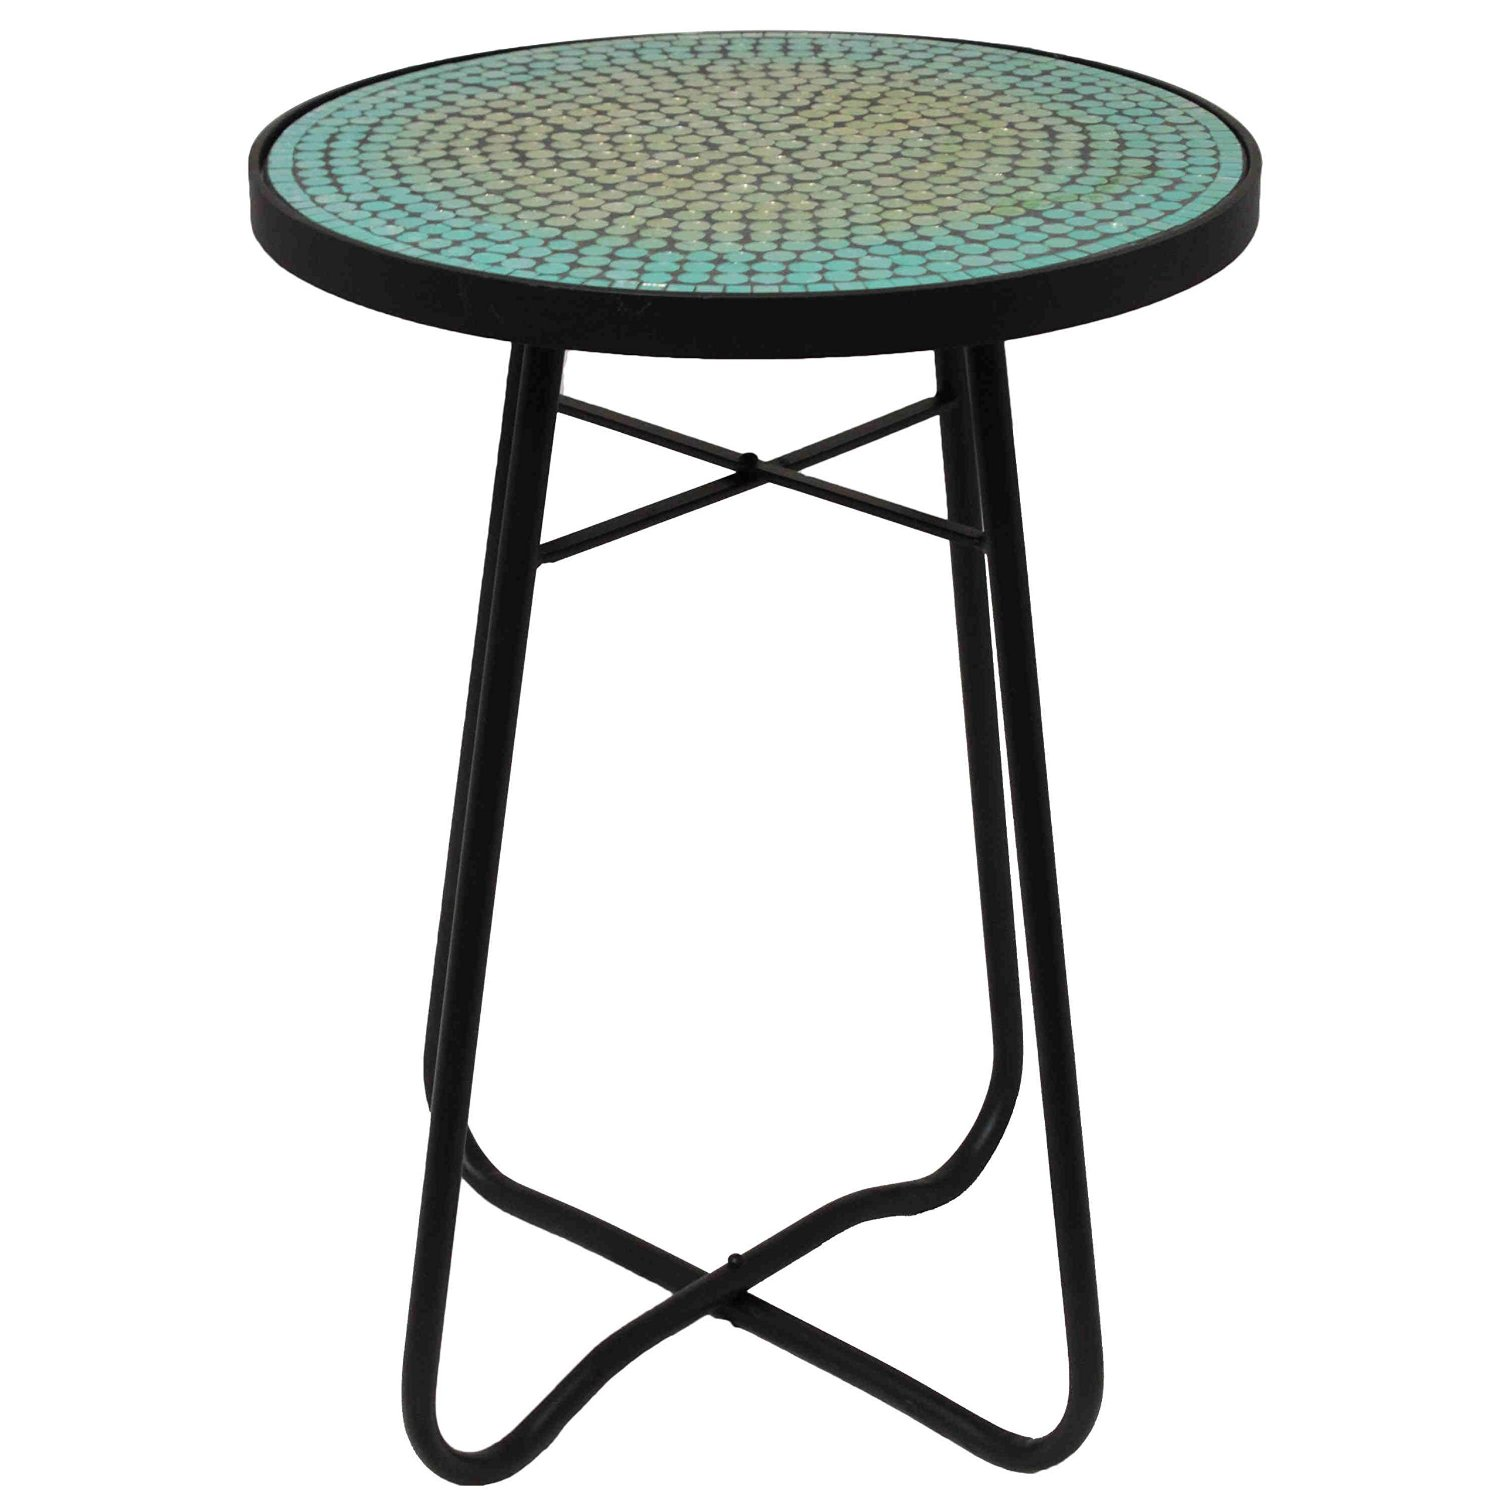 round black accent table find metal get quotations side contemporary style crafted glass marble coffee toronto silver occasional comfortable drum throne white gloss nest tables